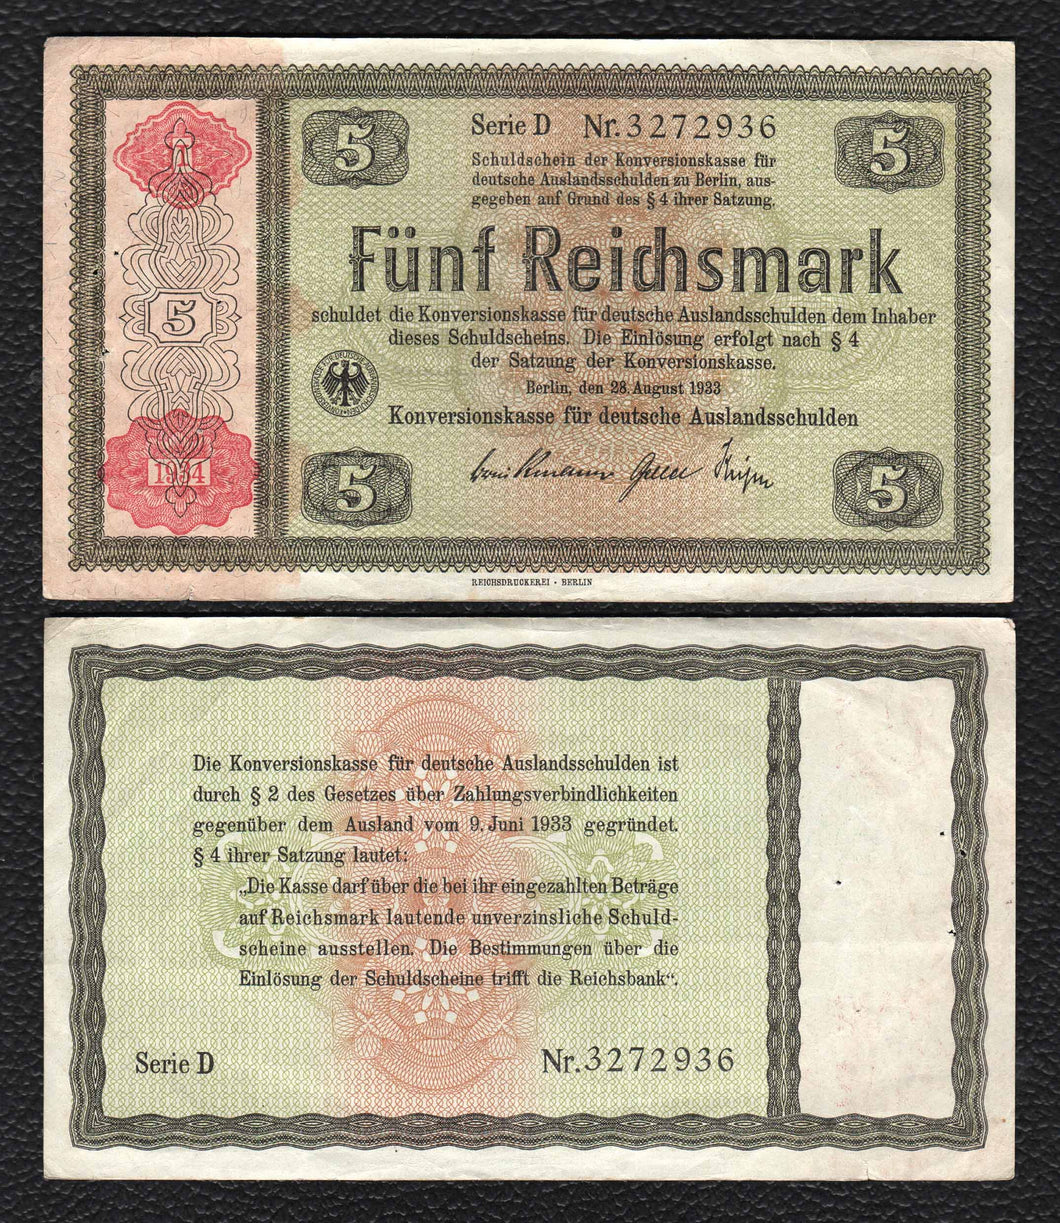 Germany P-199  28.8.1933 5 Reichsmark - Fine.Very Fine, w/Pin Holes!